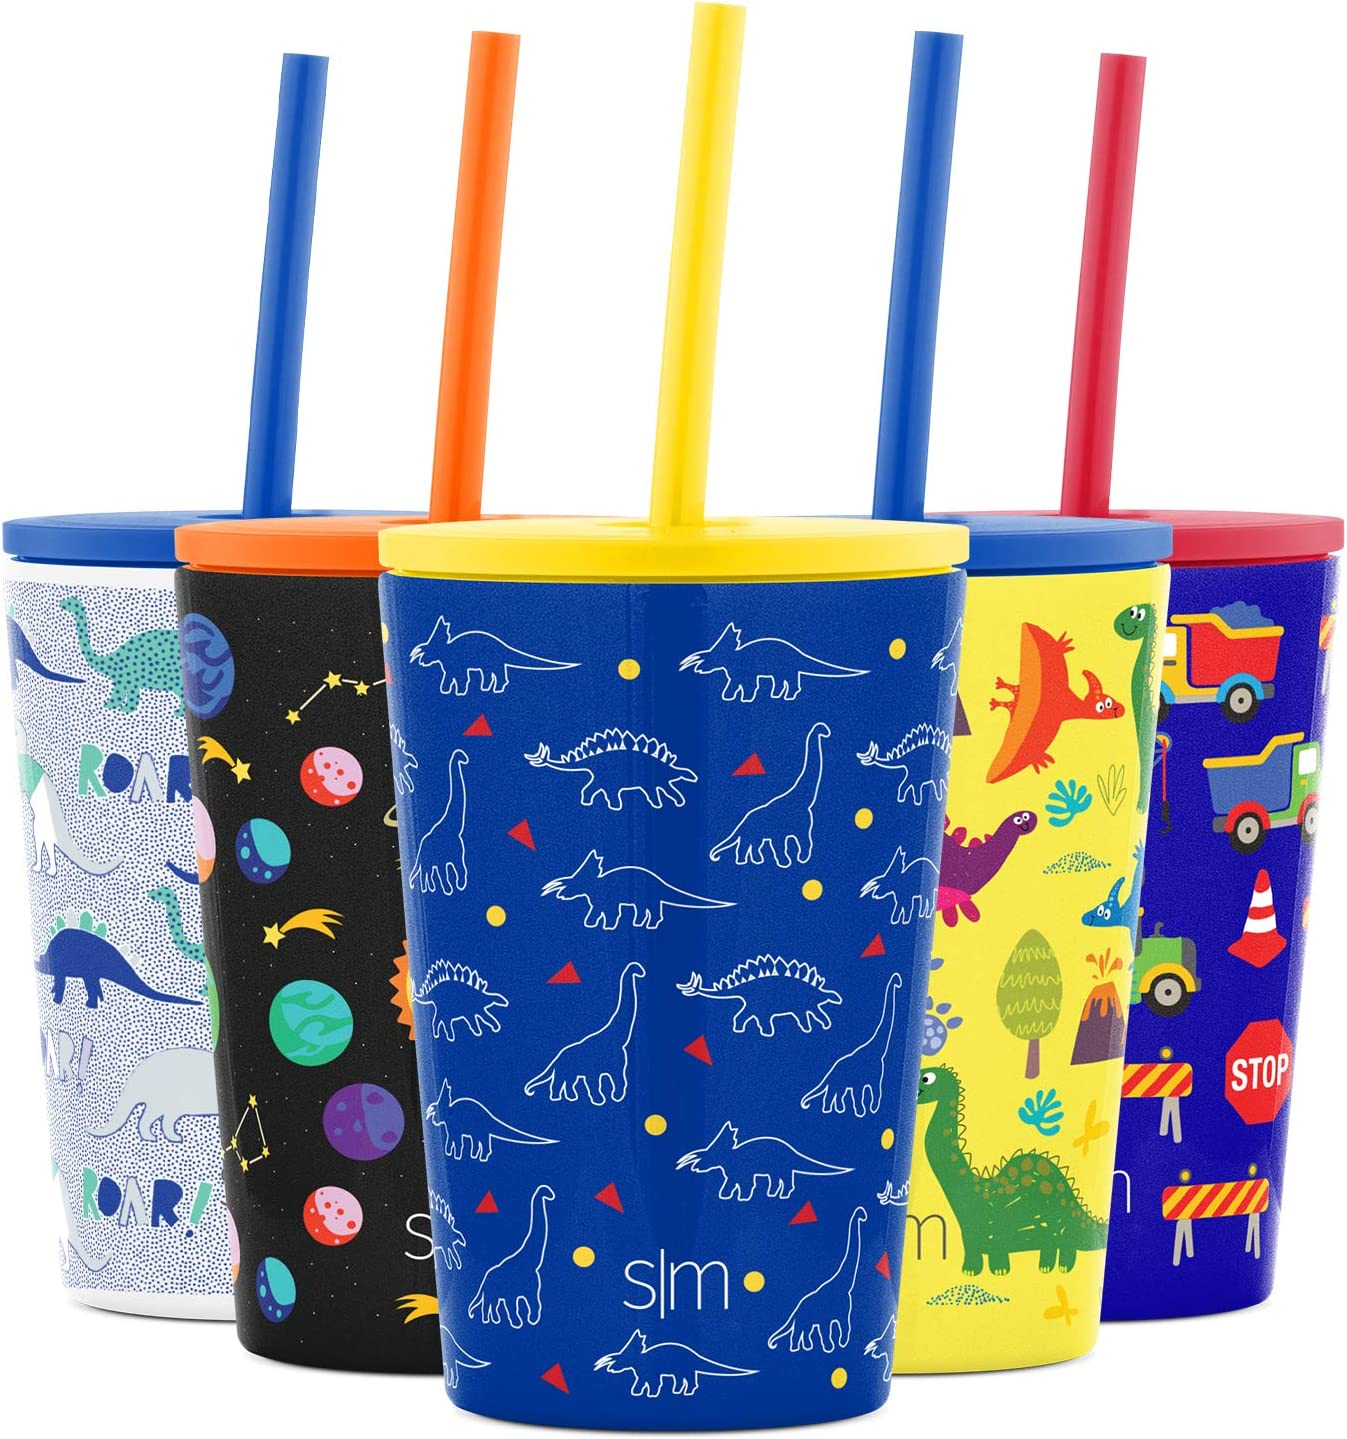 Simple Modern Kids Cup 12oz Classic Tumbler with Lid and Silicone Straw - Vacuum Insulated Stainless Steel for Toddlers Girls Boys Dinosaurs